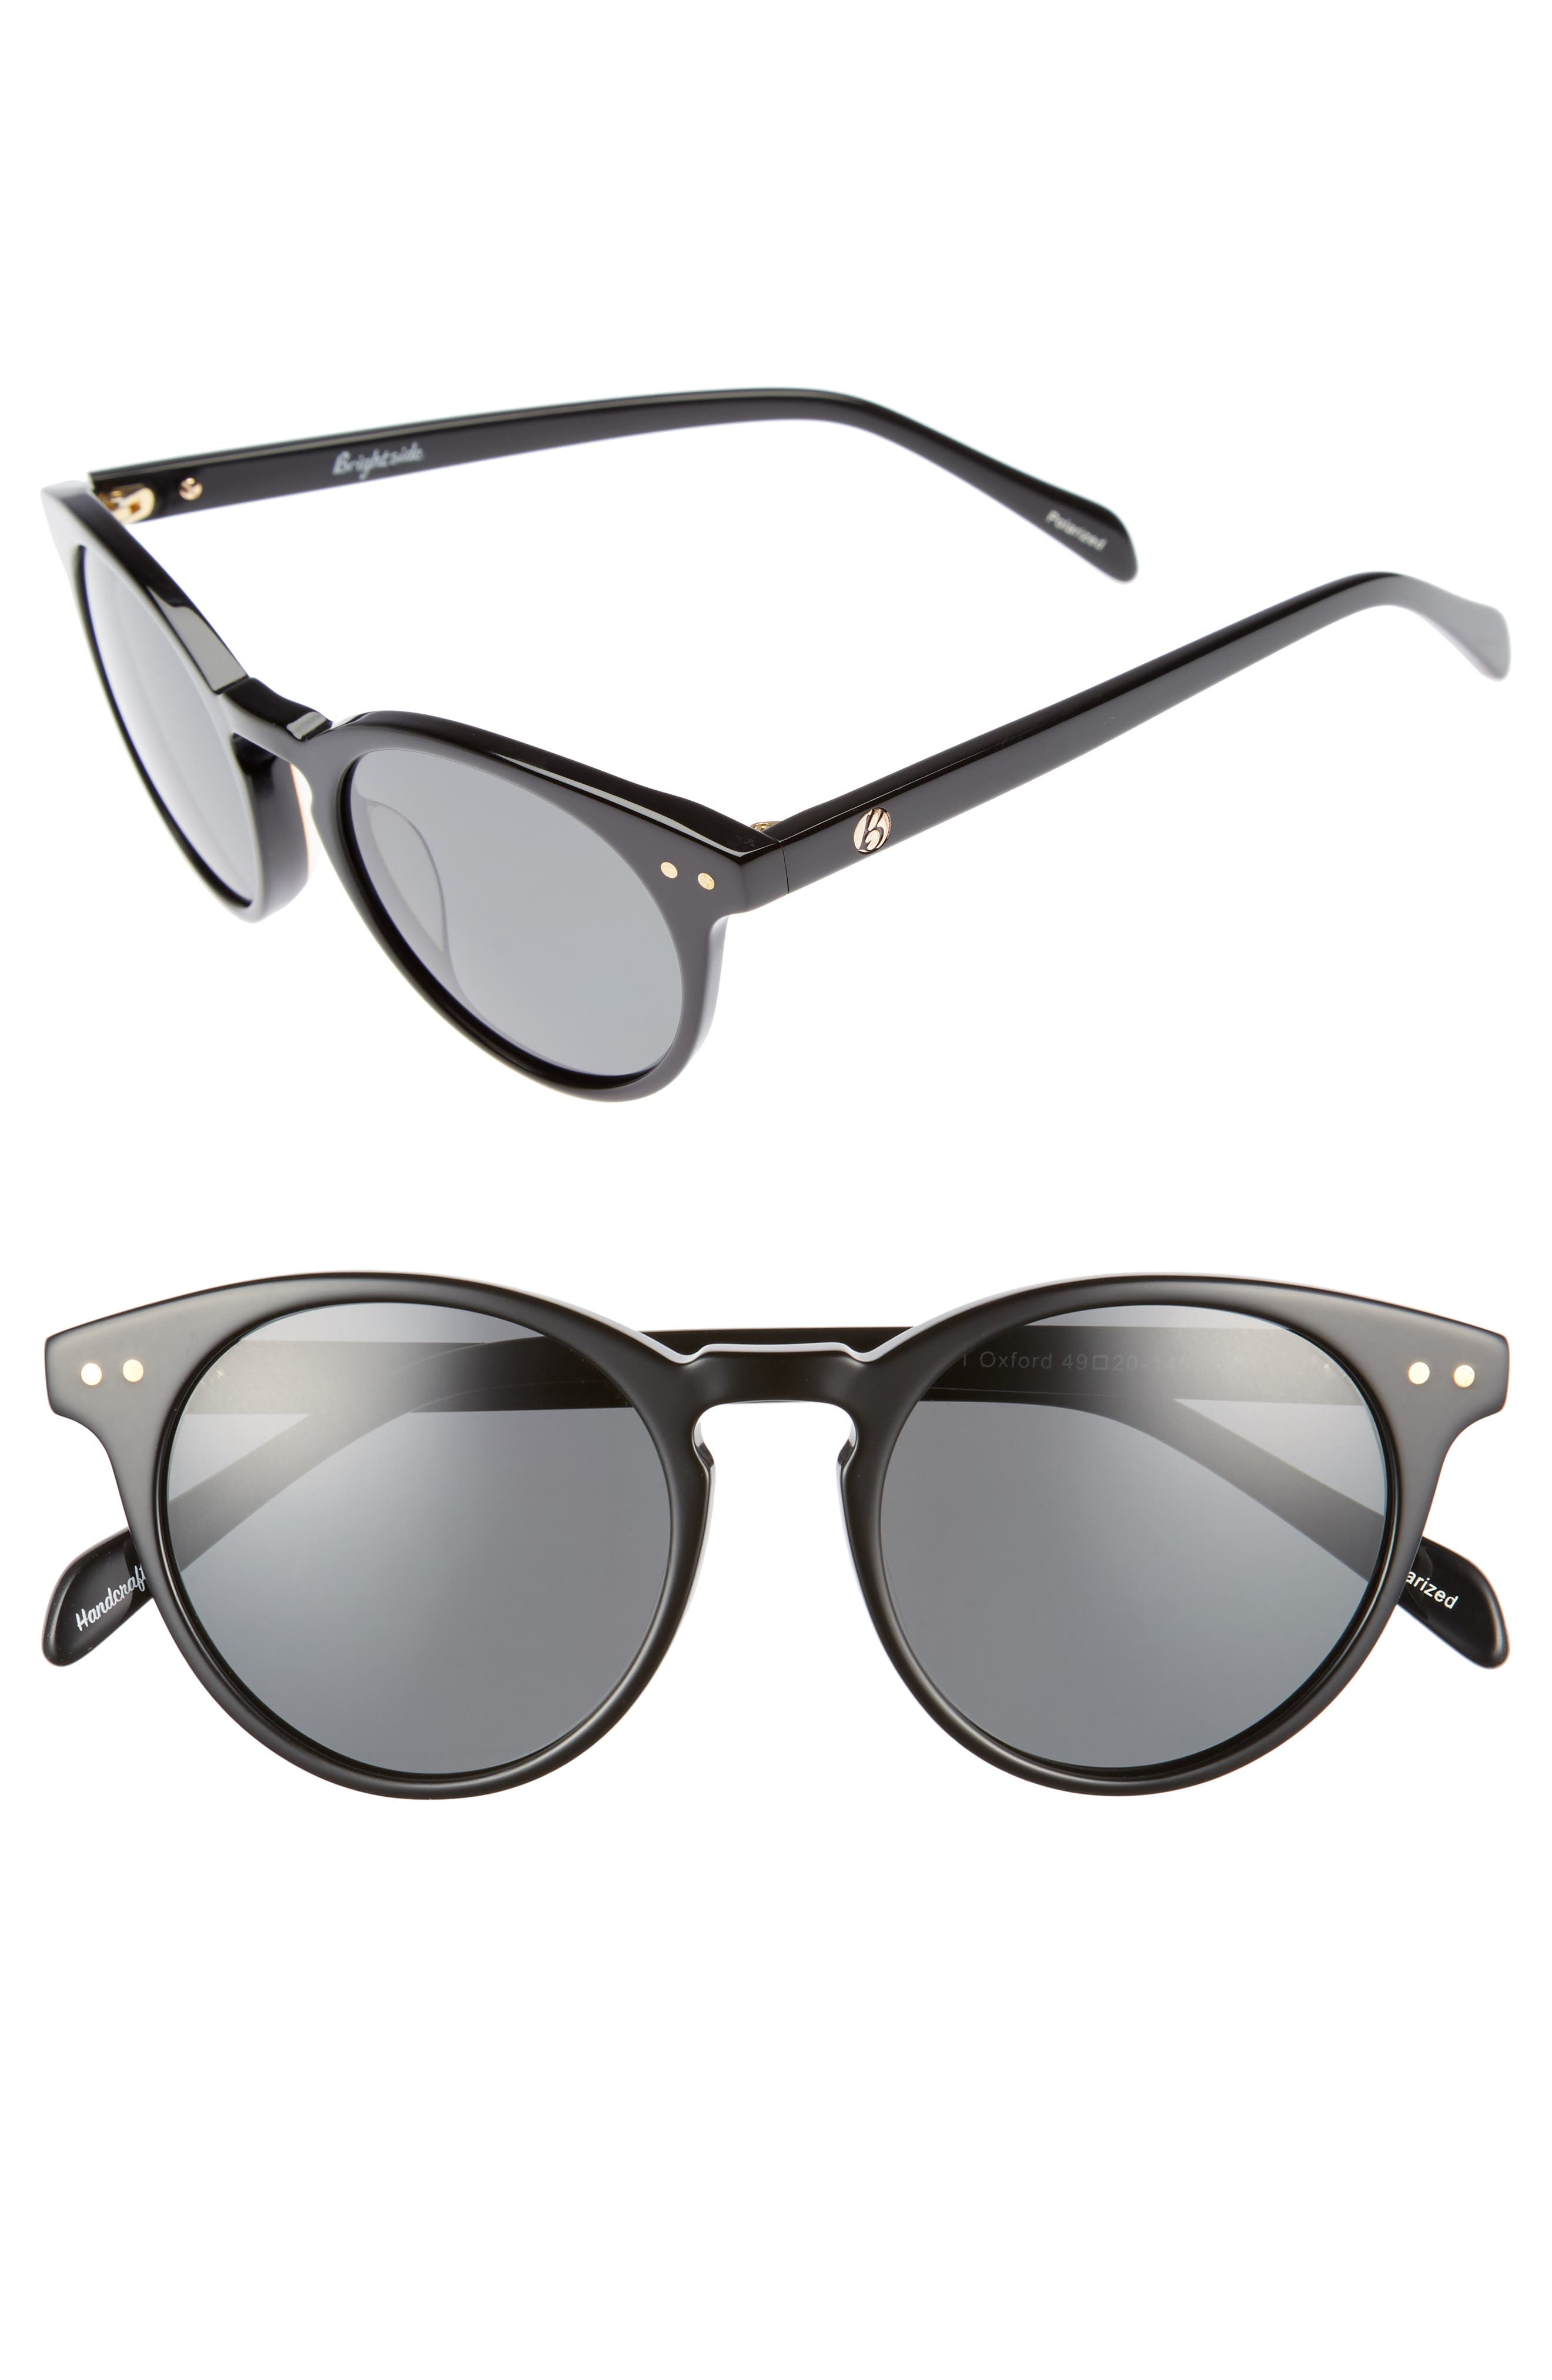 Oxford 49mm Polarized Sunglasses,                             Main thumbnail 1, color,                             Black/ Grey Polar